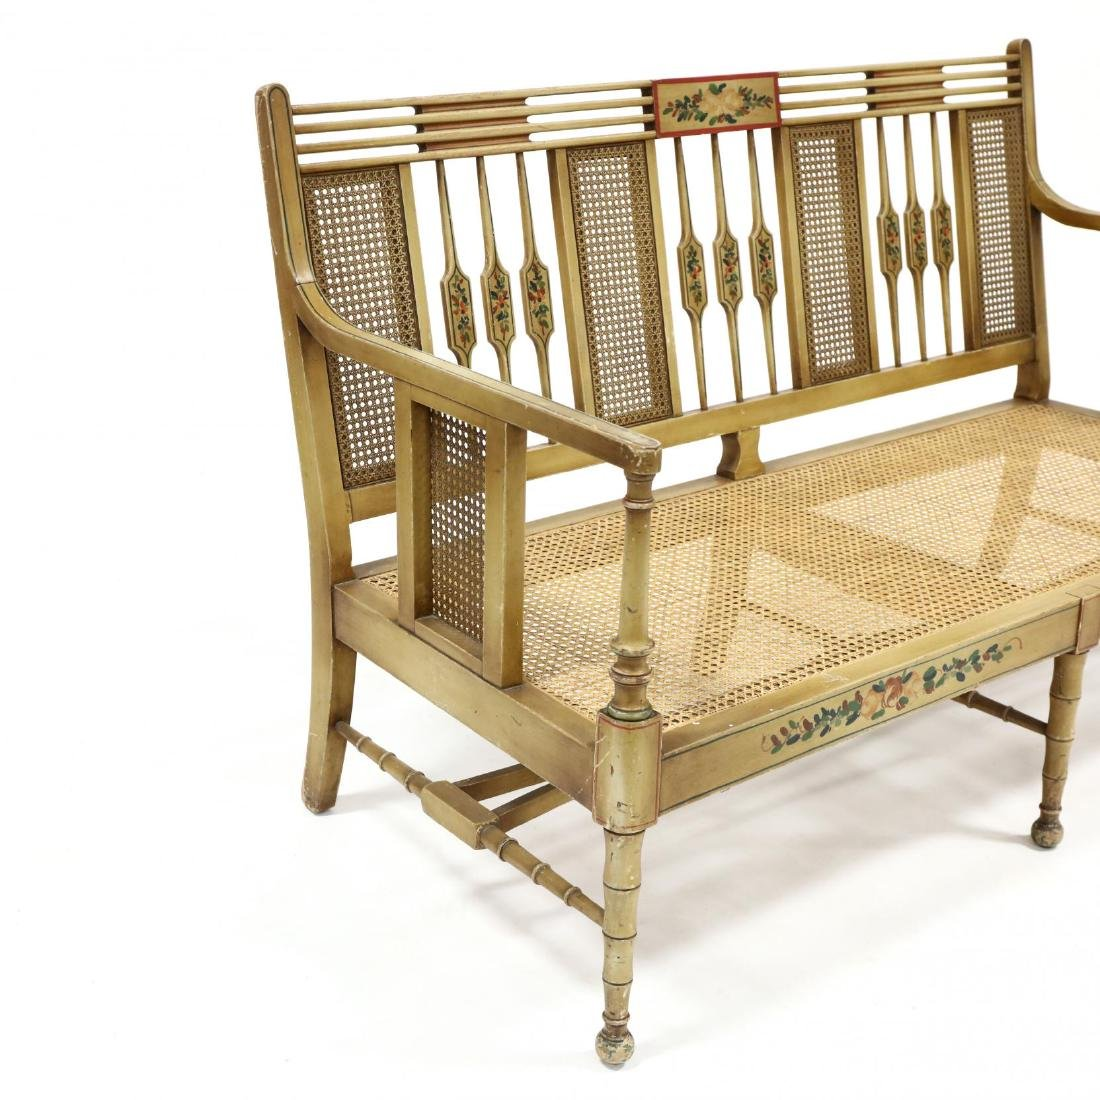 Elgin A. Simonds Furniture Co., Vintage Painted Caned - 4